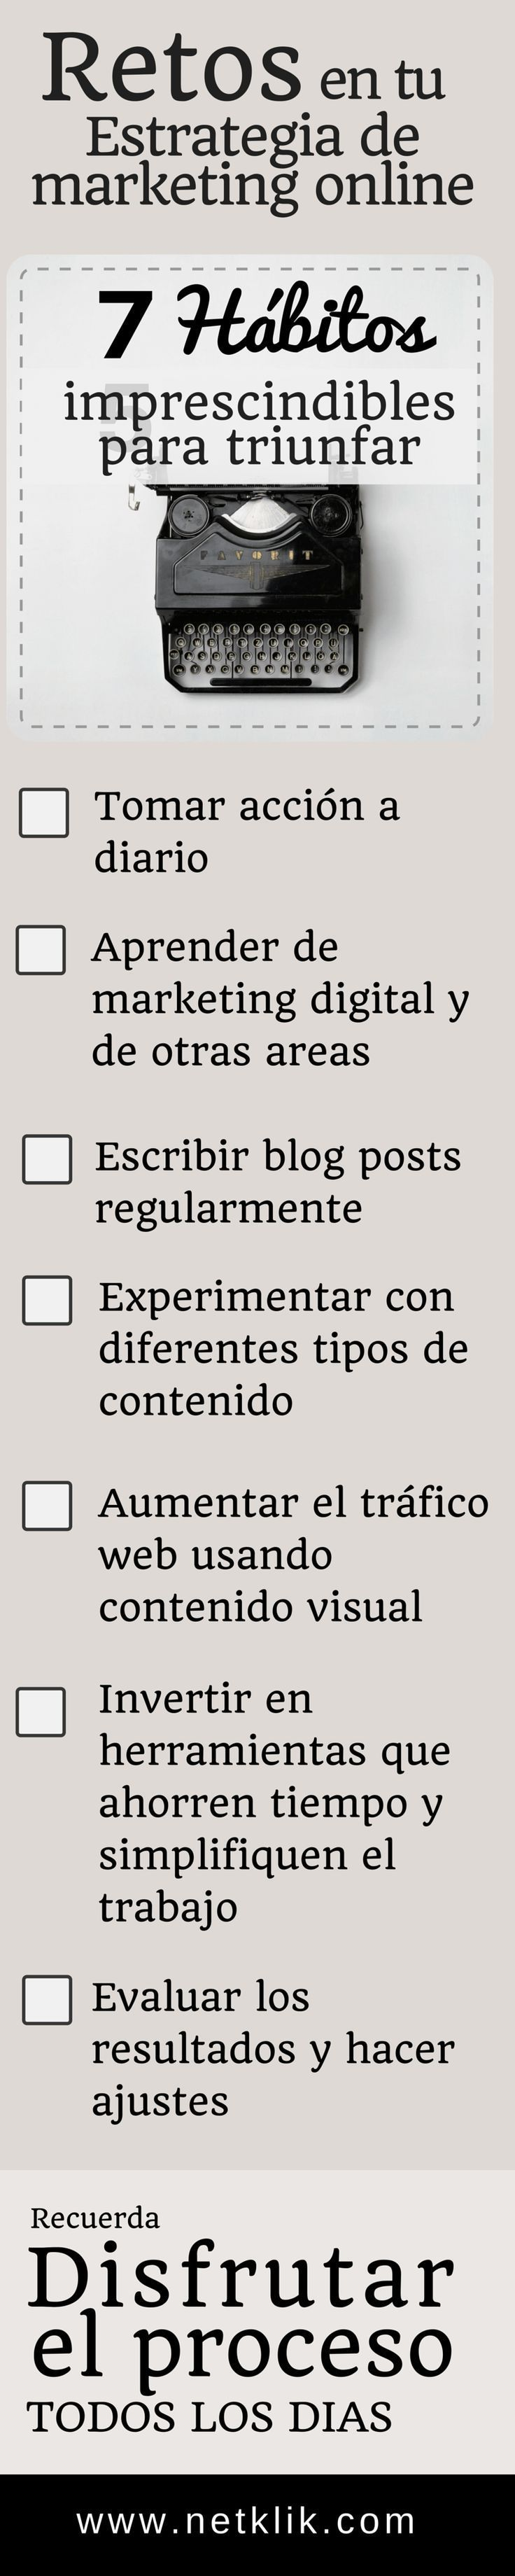 estrategias de marketing online checklist